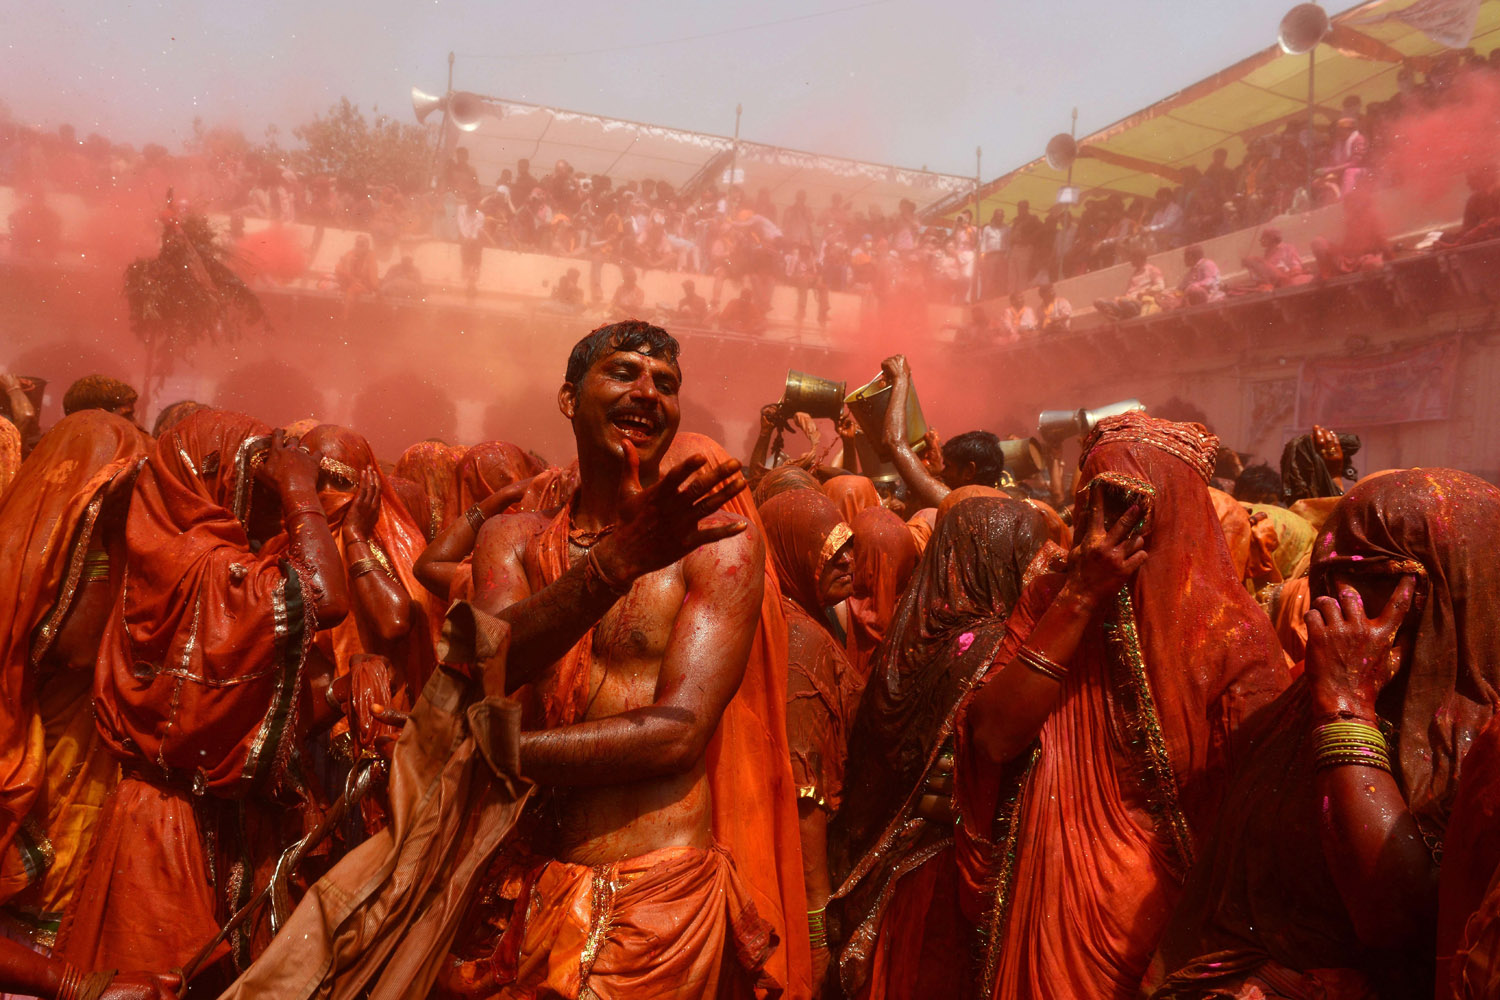 Mar. 18, 2014. Indian revelers take part in the game of 'Huranga' at The Dauji Temple in Mathura, south of New Delhi. 'Huranga' is a game played between men and women a day after Holi during which men drench women with liquid colors and women tear off the clothes of the men.